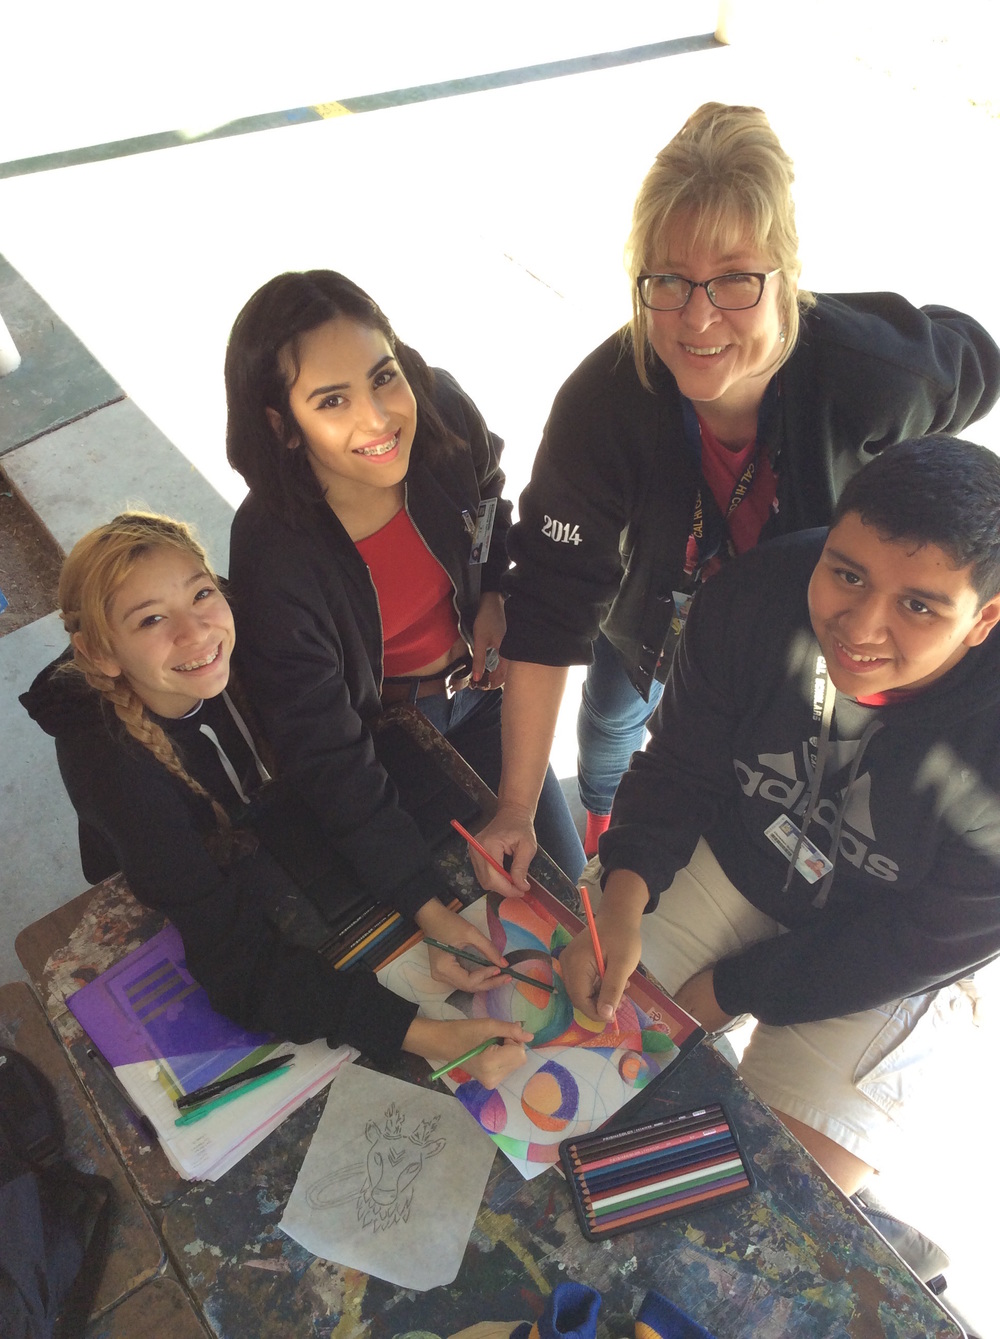 California High School art teacher Julie Tonkovich works on a project with students Devinee Parra, left, Natalie Mancillas and Christian Gutierrez. Tonkovich is one of only 10 public school teachers appointed to serve on the Instructional Quality Commission, an advisory body to the State Board of Education.